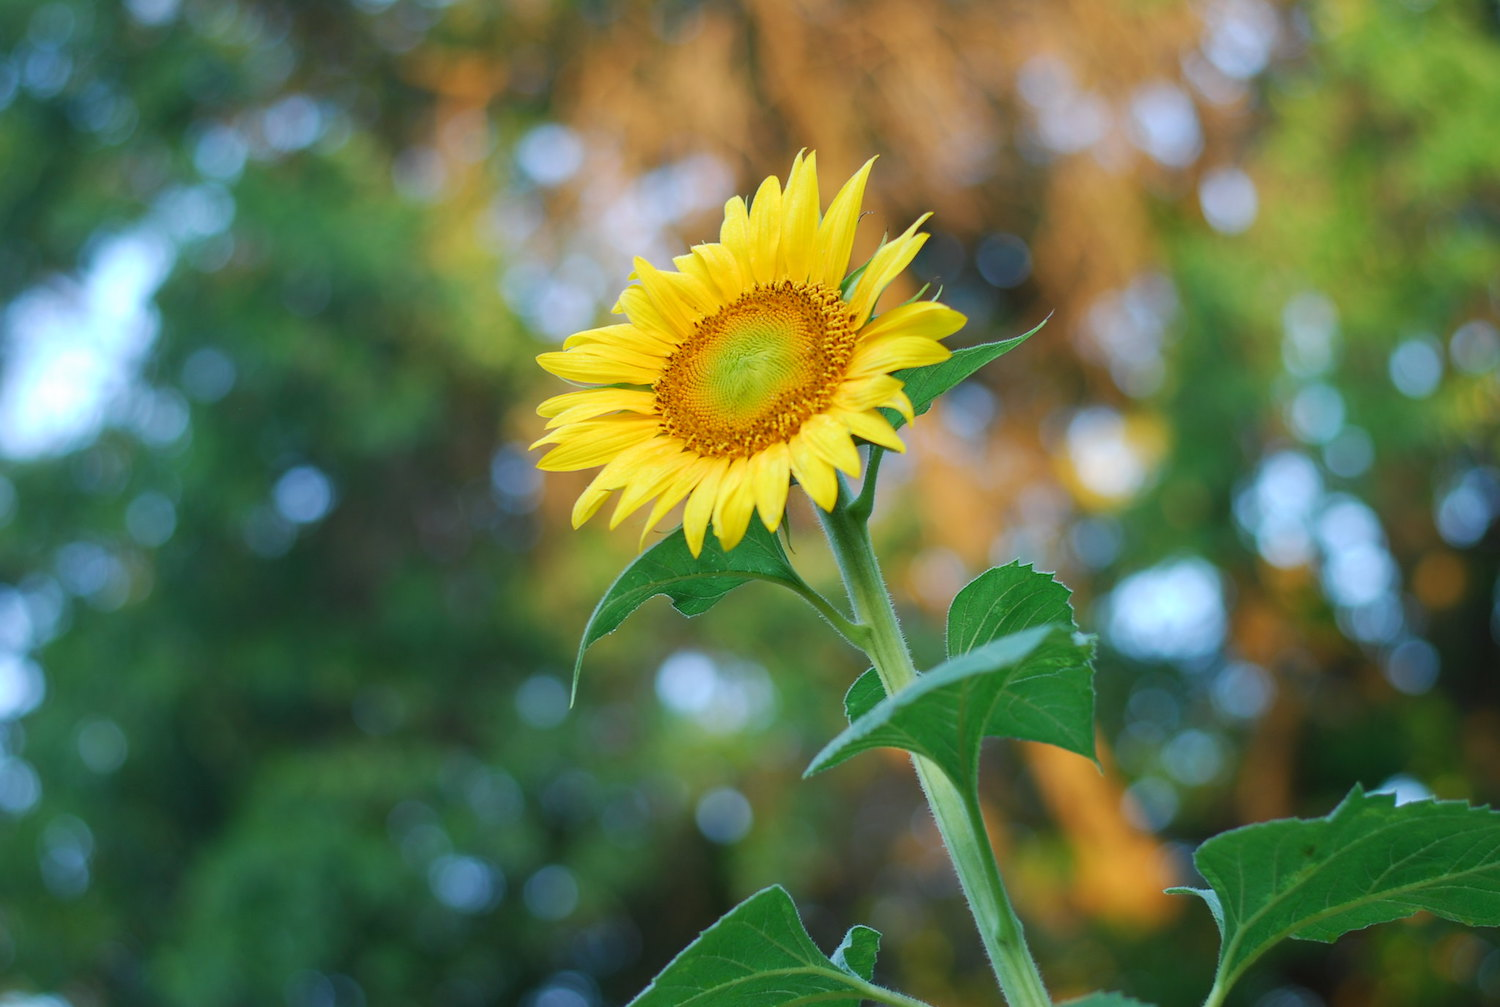 https://i2.wp.com/digital-photography-school.com/wp-content/uploads/2020/05/backyard-photo-safari-sunflower-sky.jpg?ssl=1